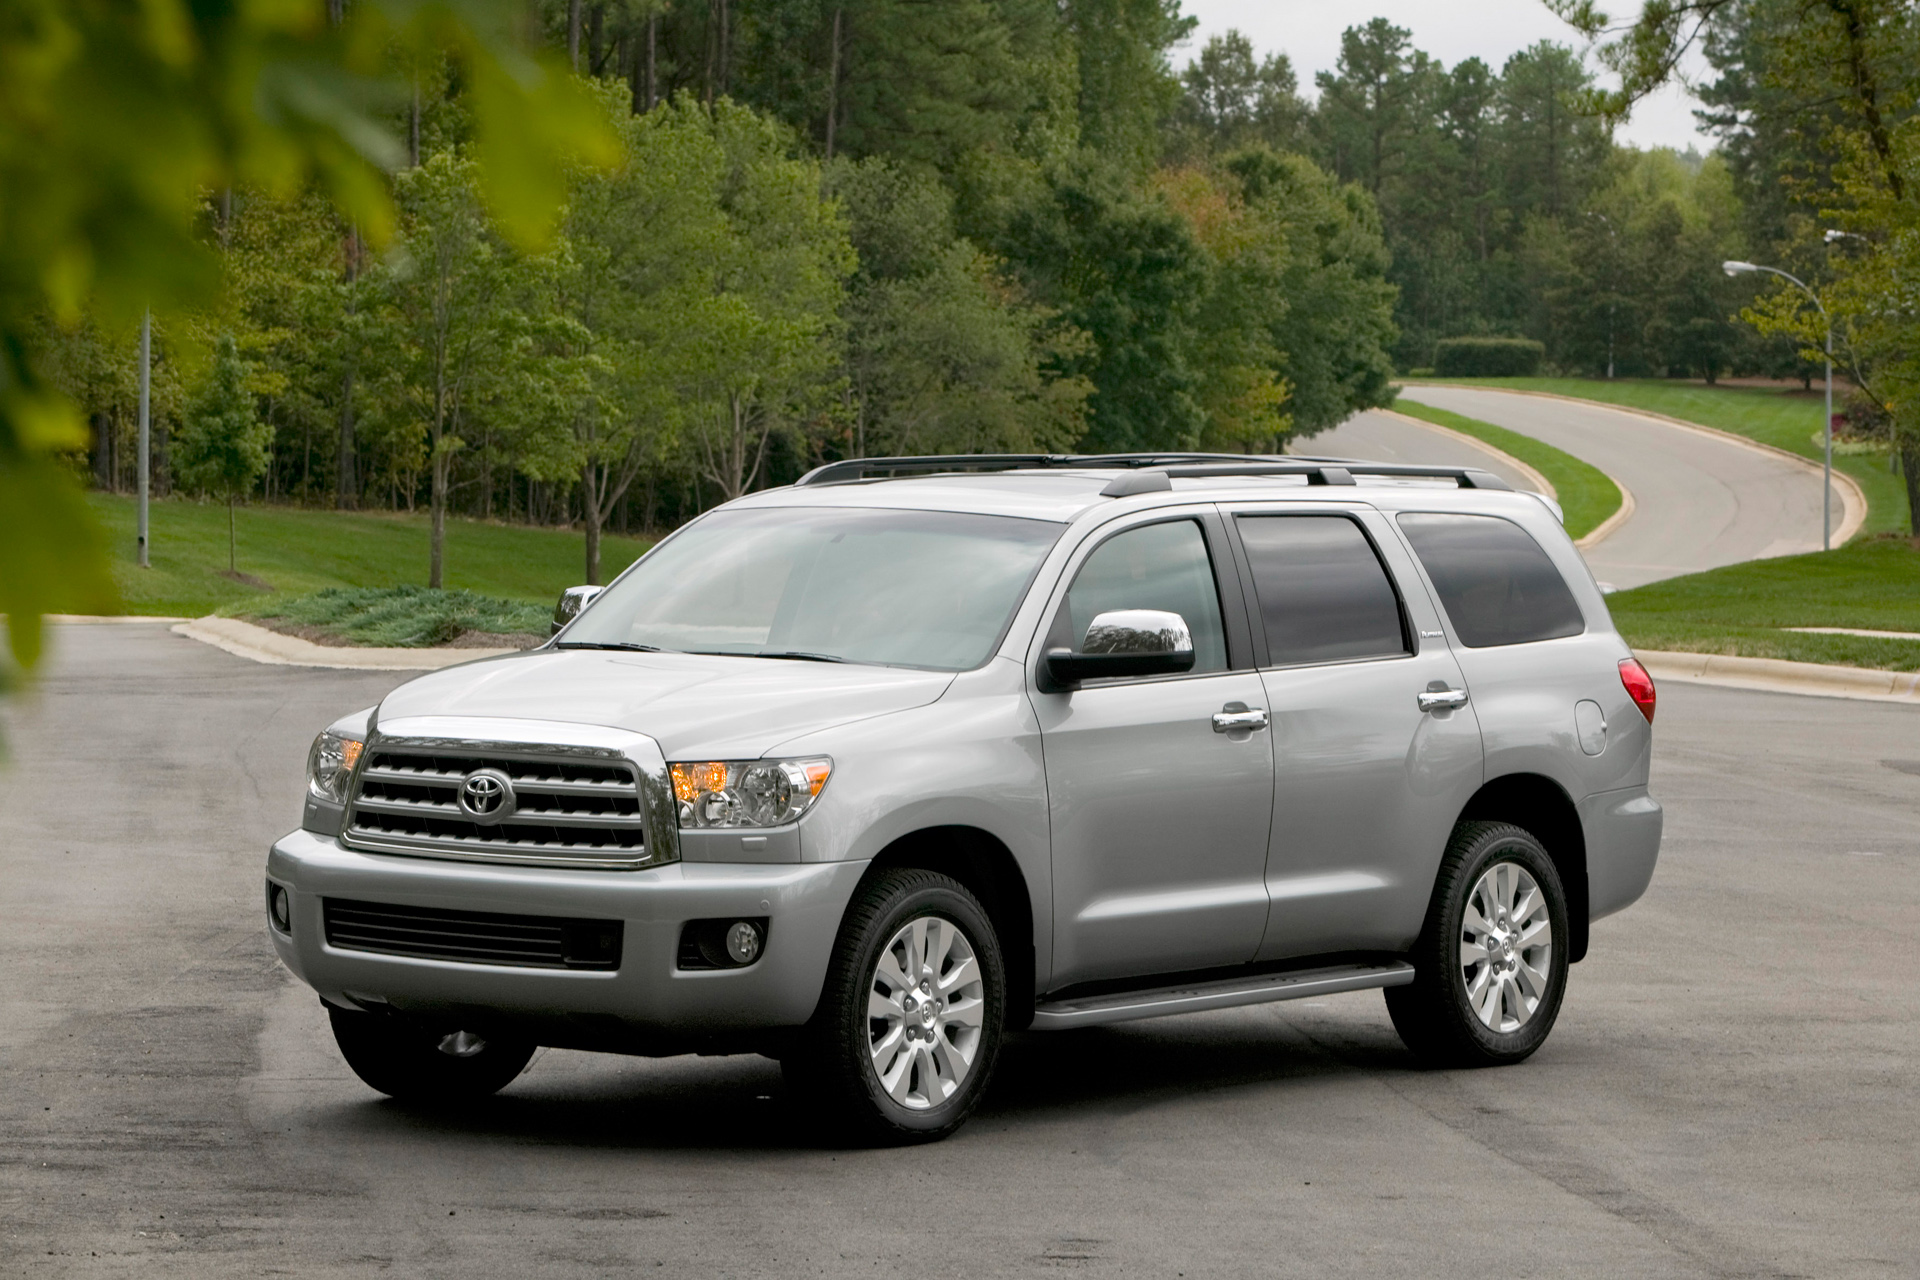 Toyota Sequoia photo 63800